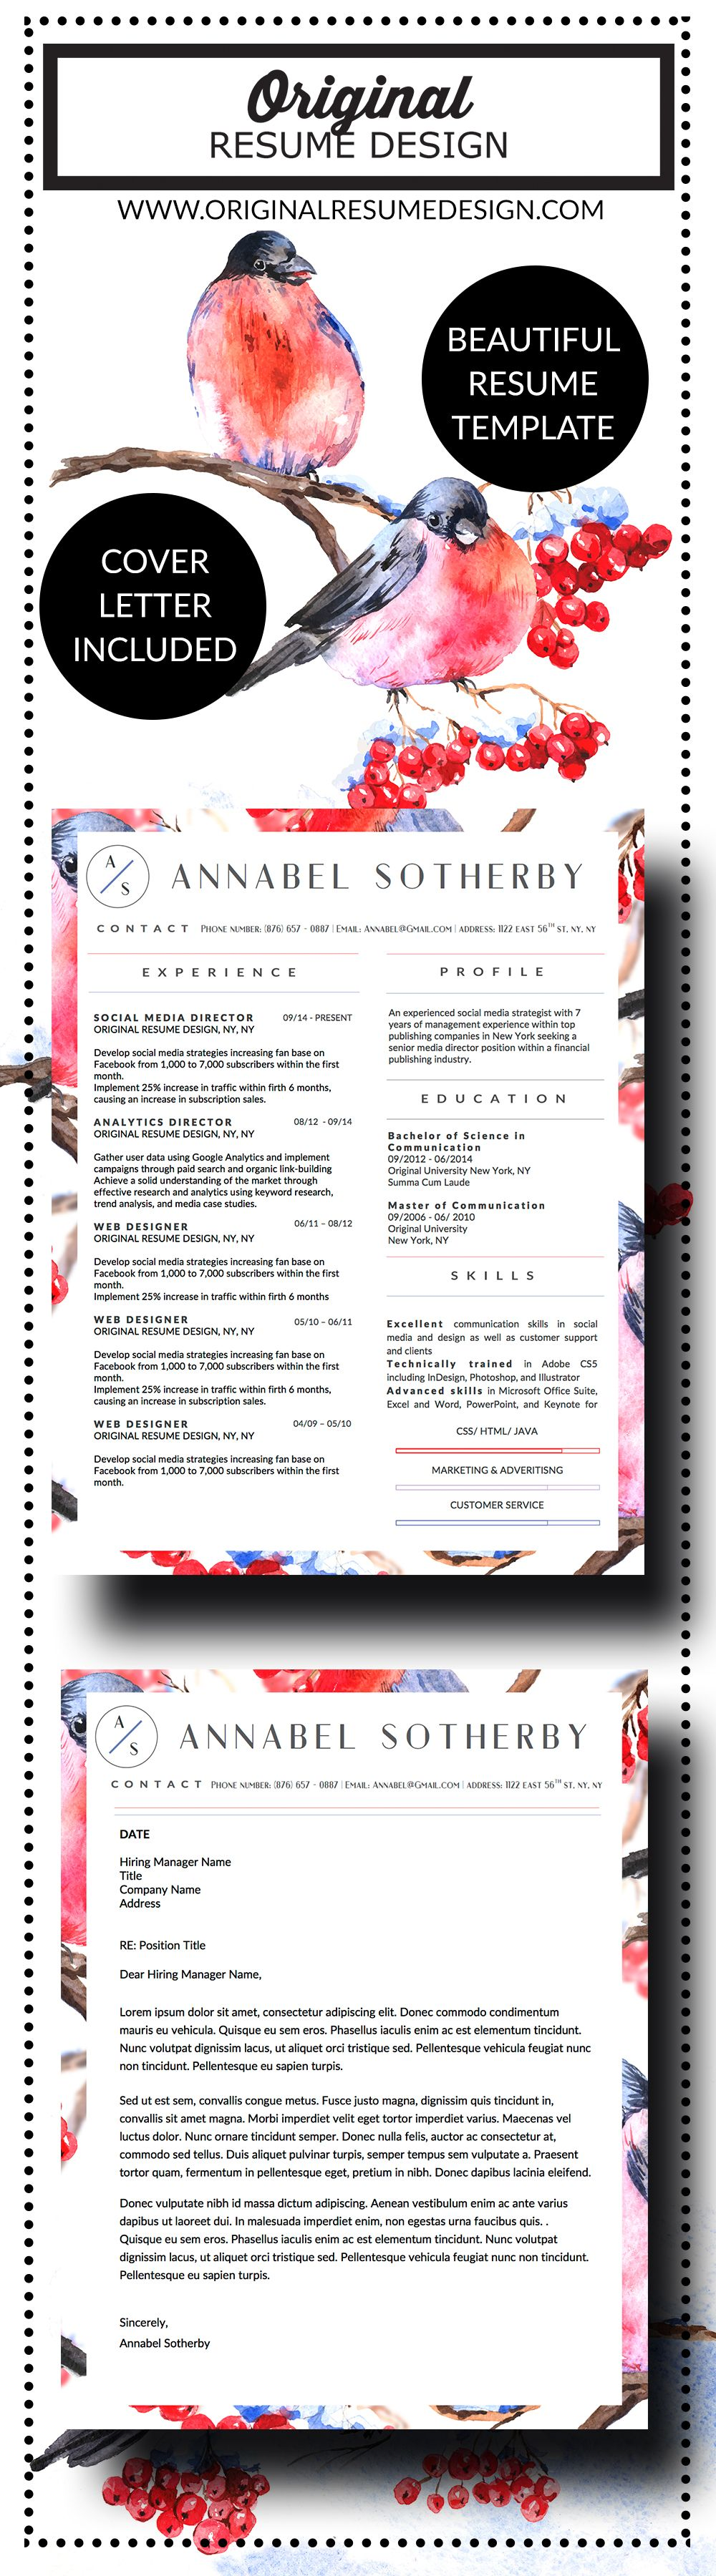 Beautiful Resume Templates Beautiful Resume Template For Ms Wordoriginal Resume Design